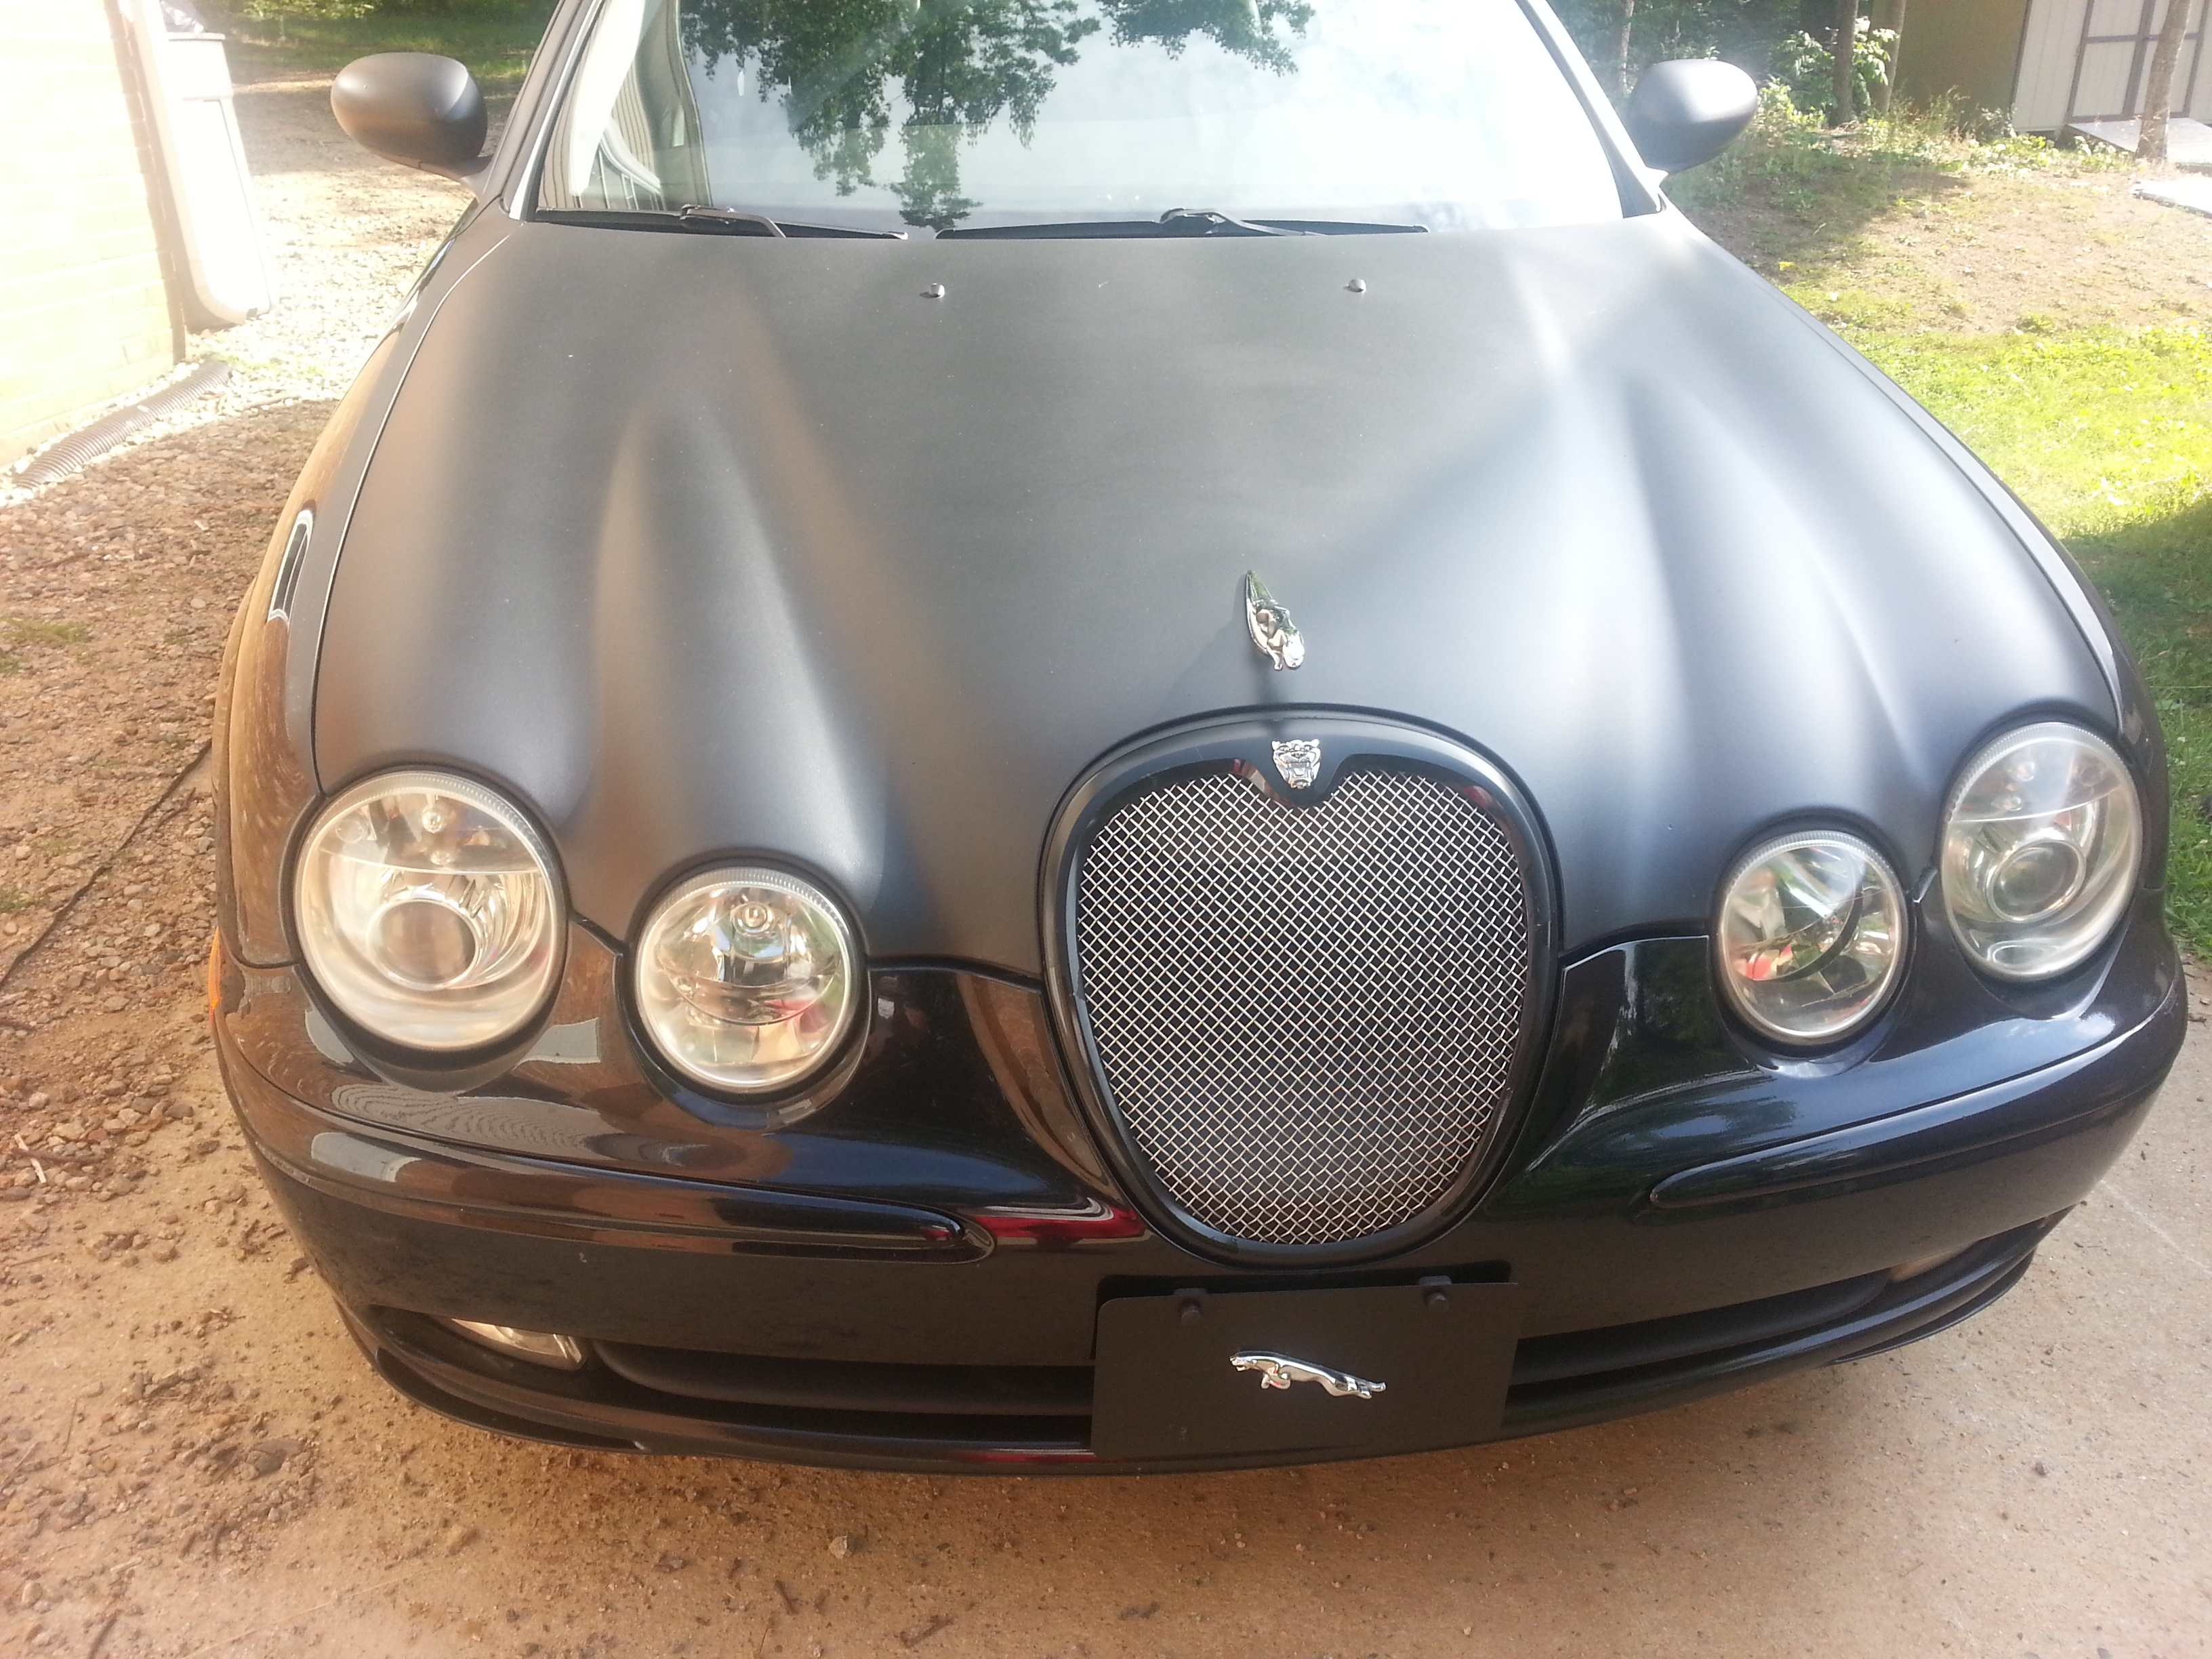 Deril25's 2003 Jaguar S-Type